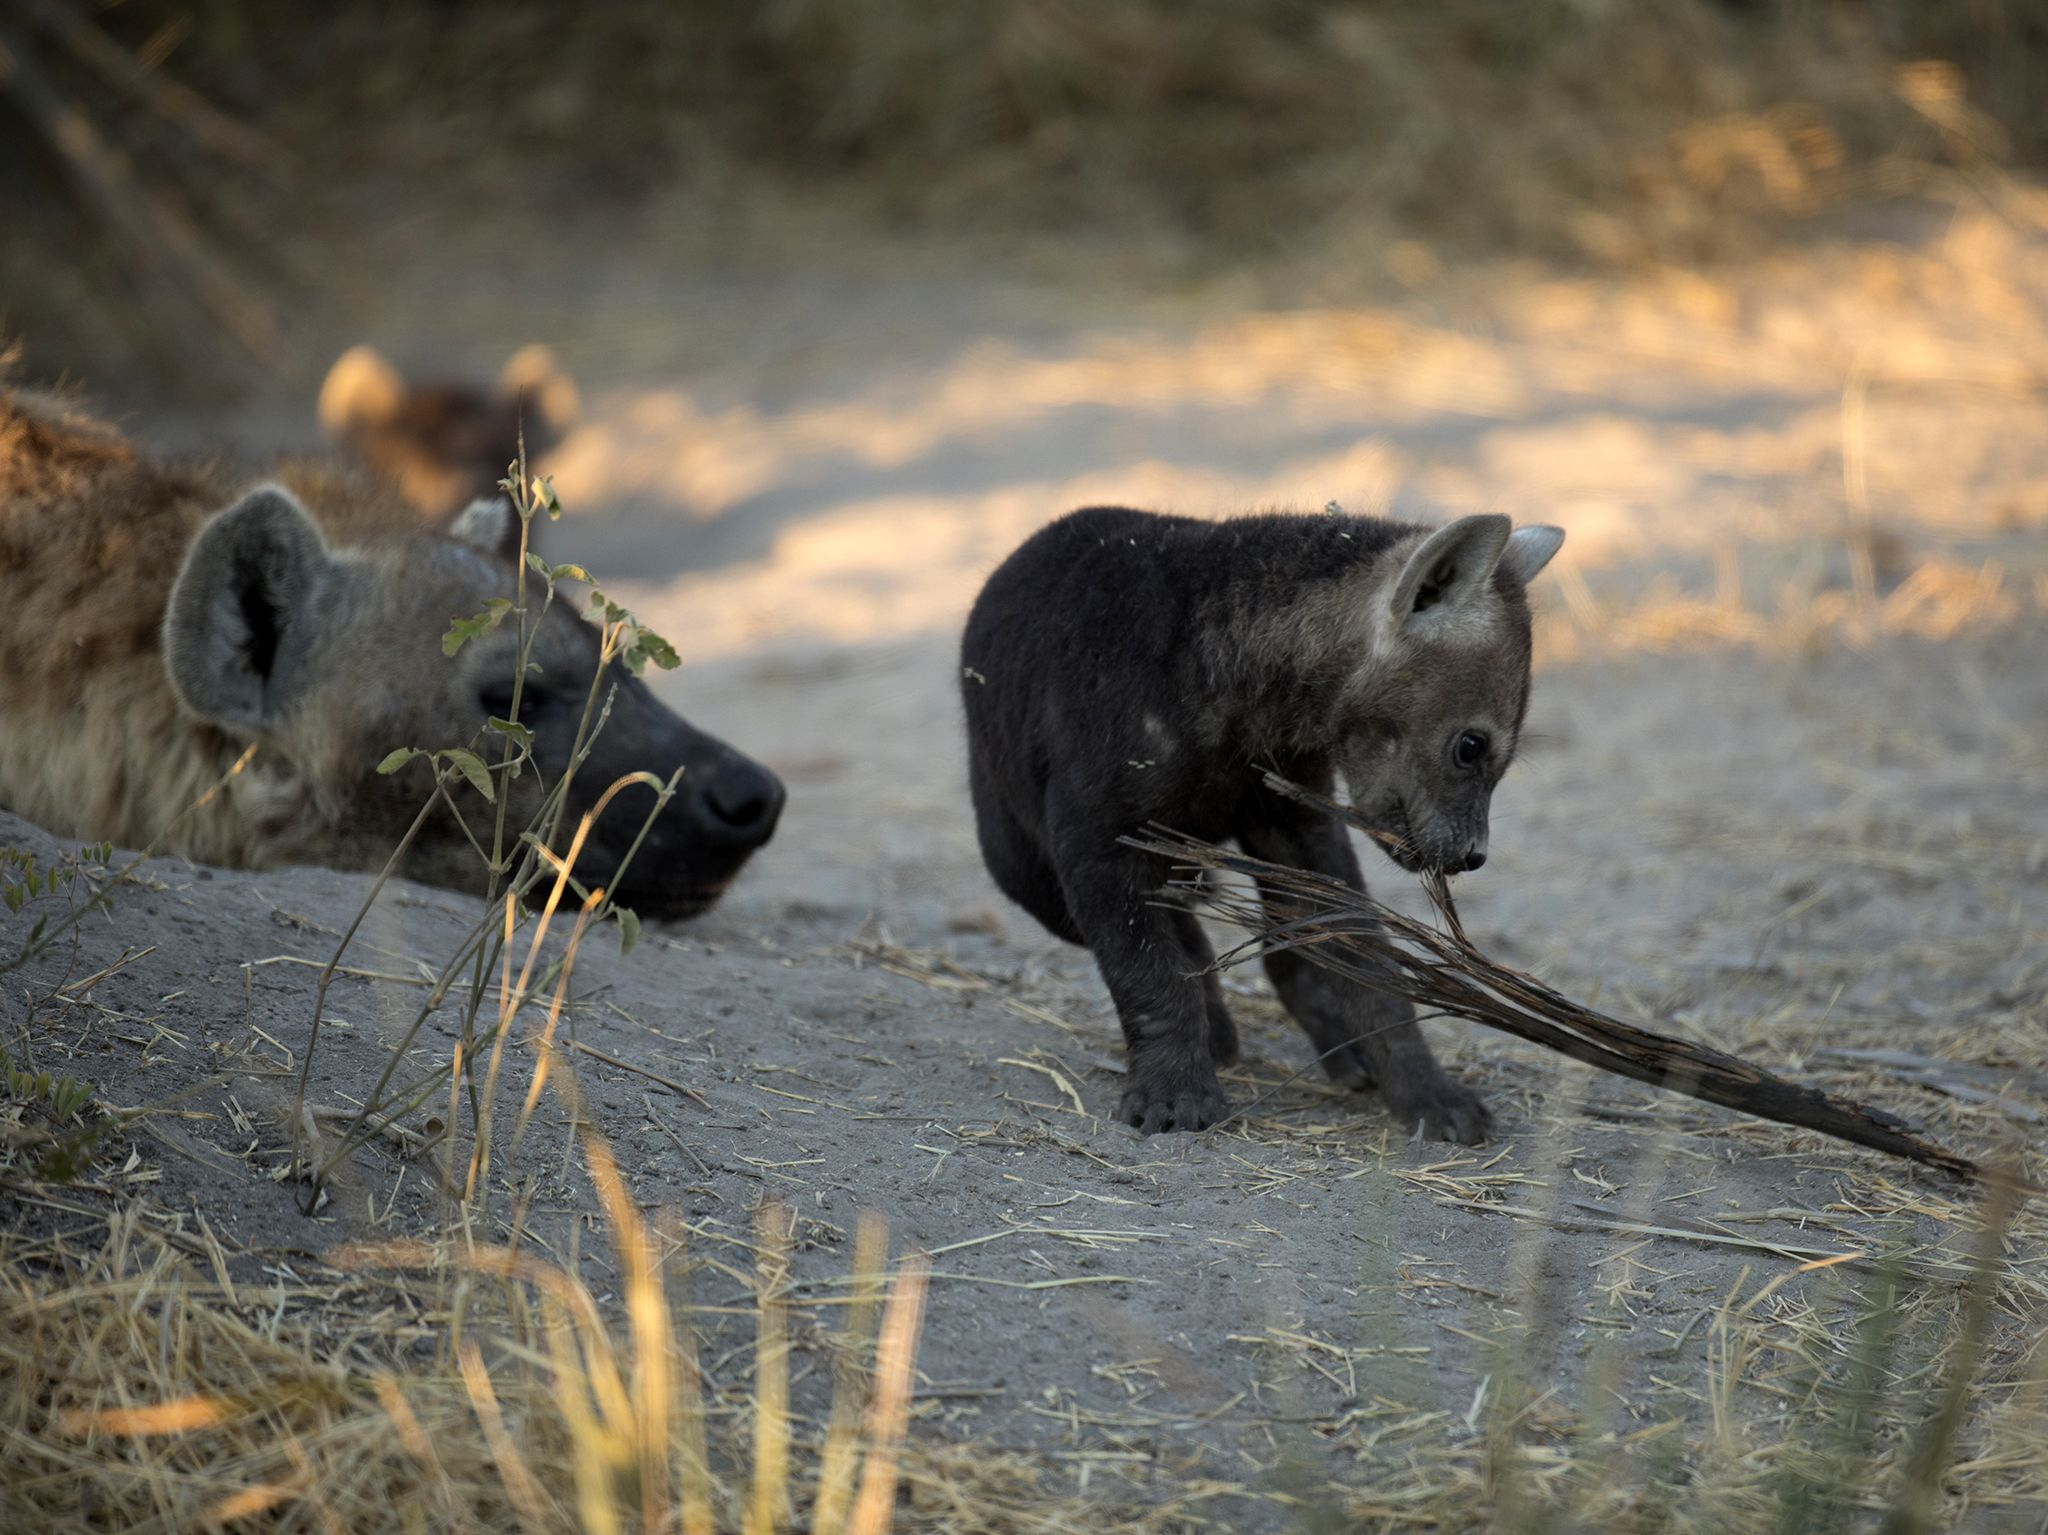 Moremi Game Reserve, Okavango Delta, Botswana:  A hyena cub plays with foliage at the den as an... [Photo of the day - June 2019]